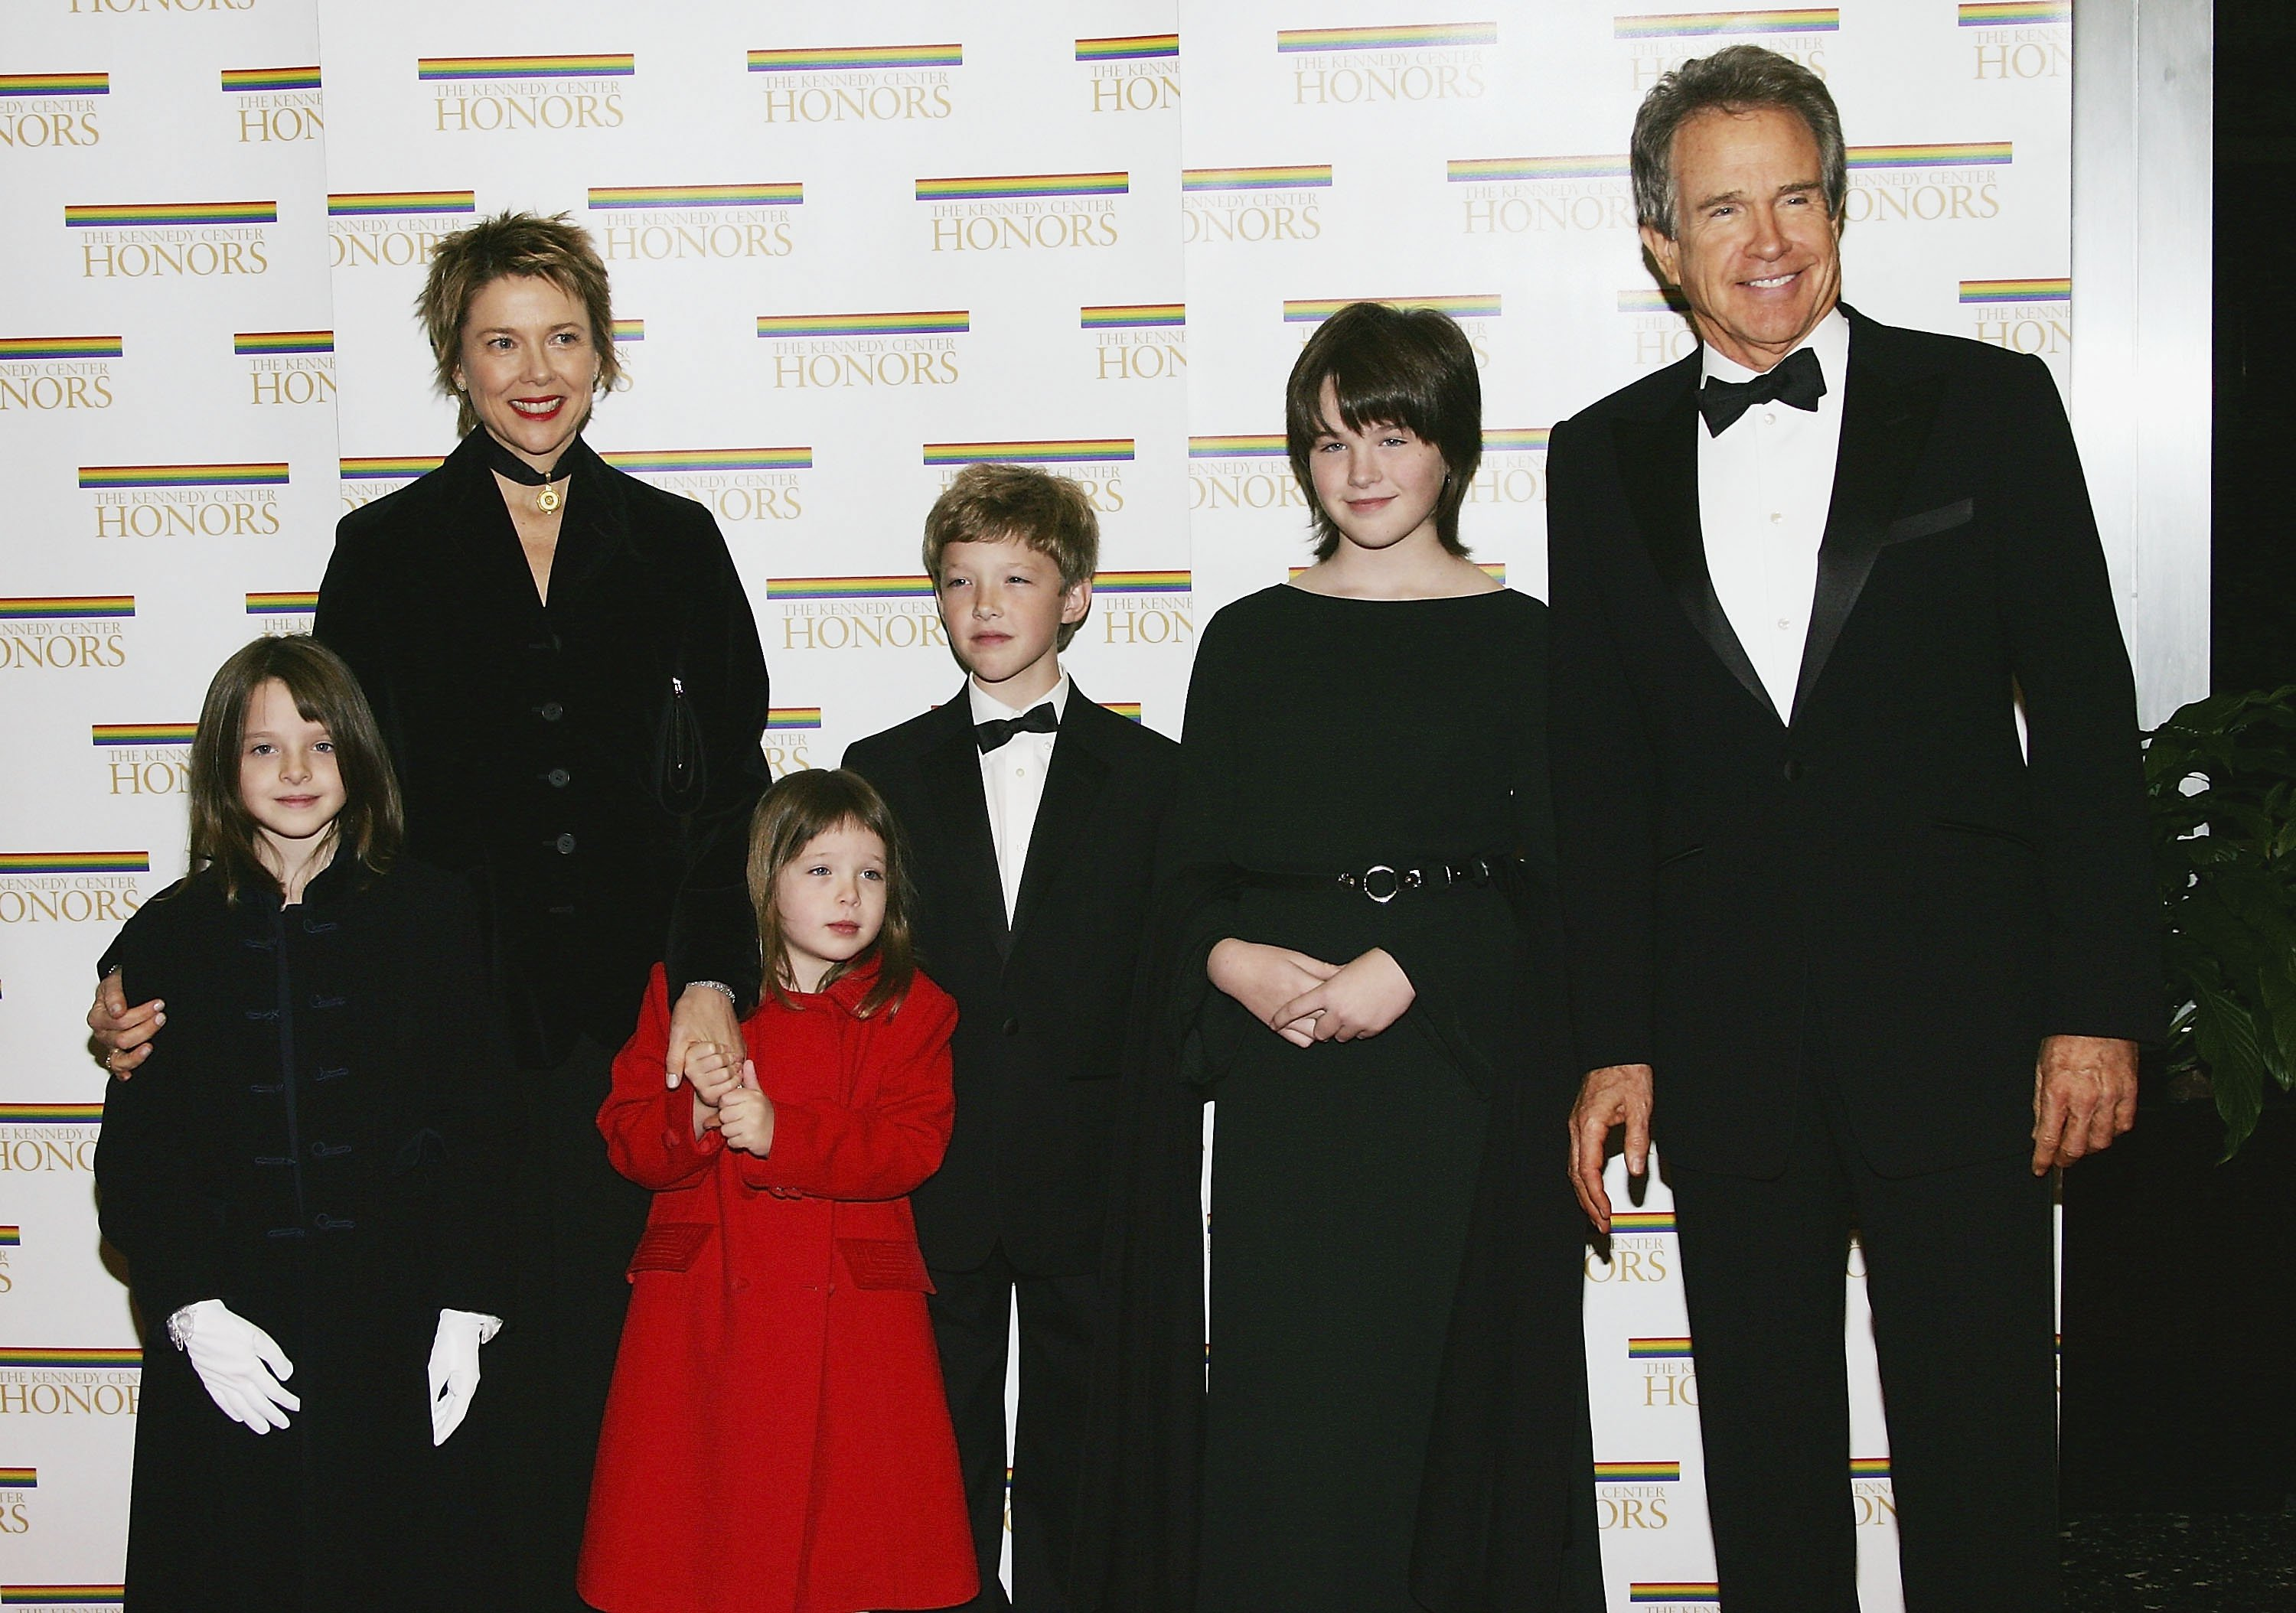 Warren Beatty and Annette Bening with their four children in 2000. I Image: Getty Images.